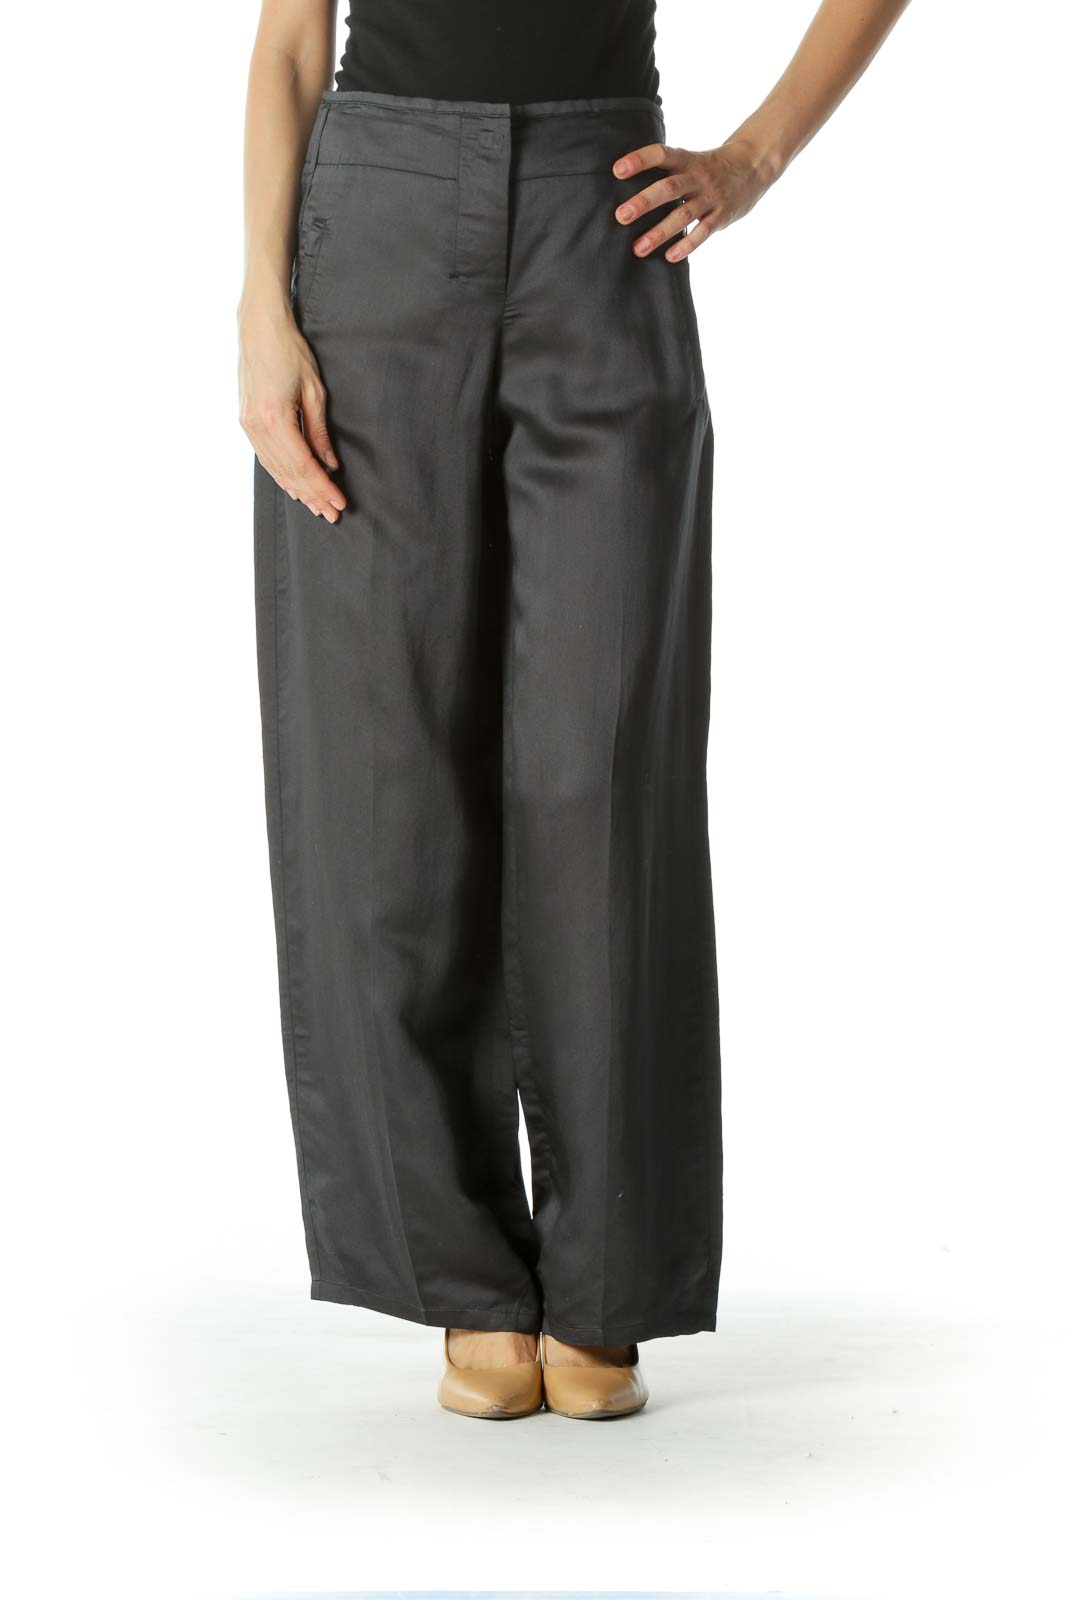 Gray Drawstring Waist Wide Leg Pants